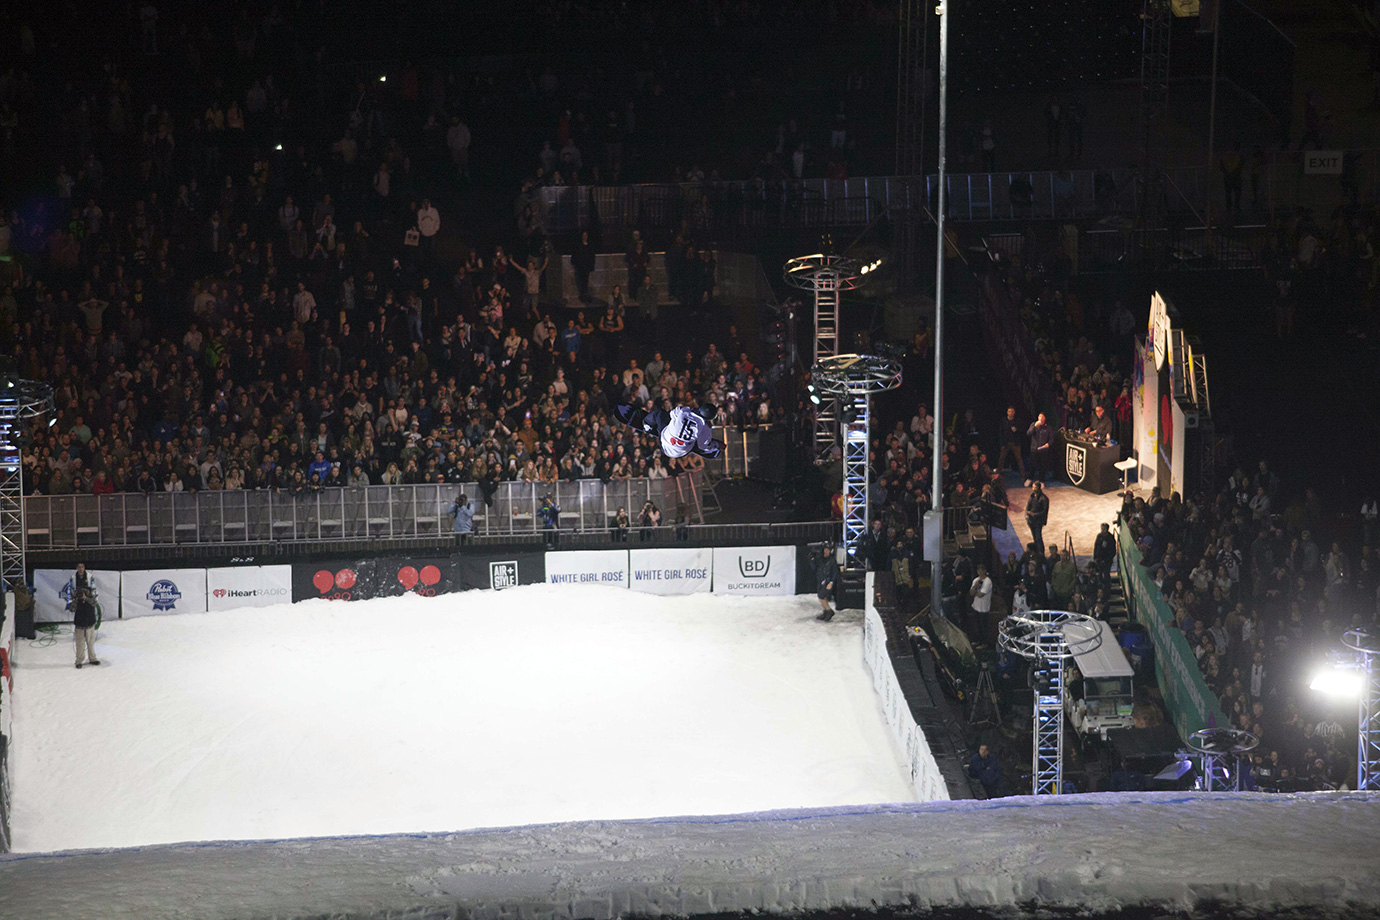 Canada's Darcy Sharpe drops over the L.A. crowd during qualifications. Riders had three runs each to secure a top-16 score that would see them through to the final.